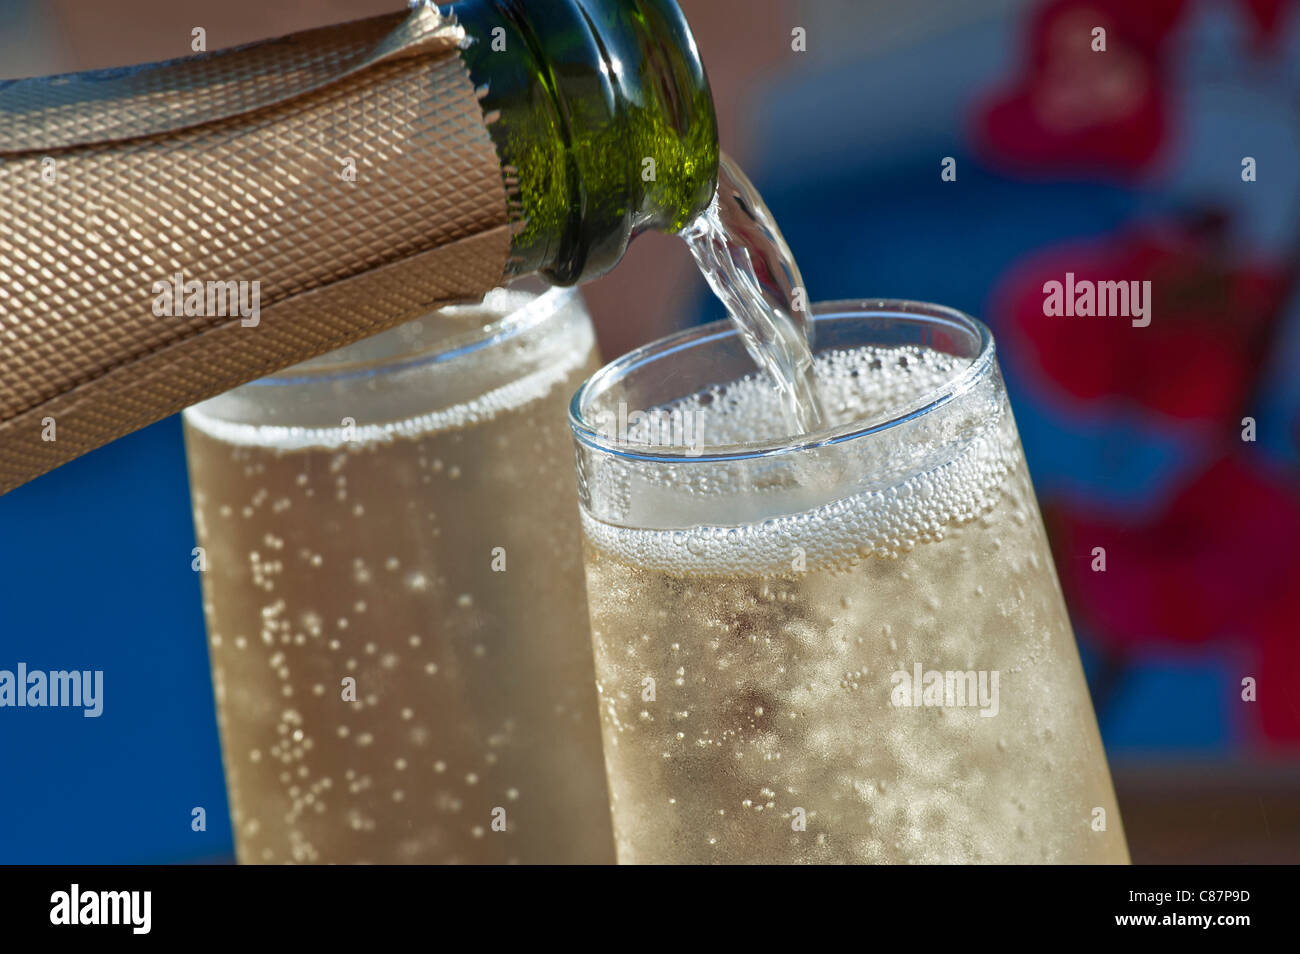 Close view on pouring chilled glasses of champagne on sunlit terrace with colourful Bougainvillea flowers and pool - Stock Image